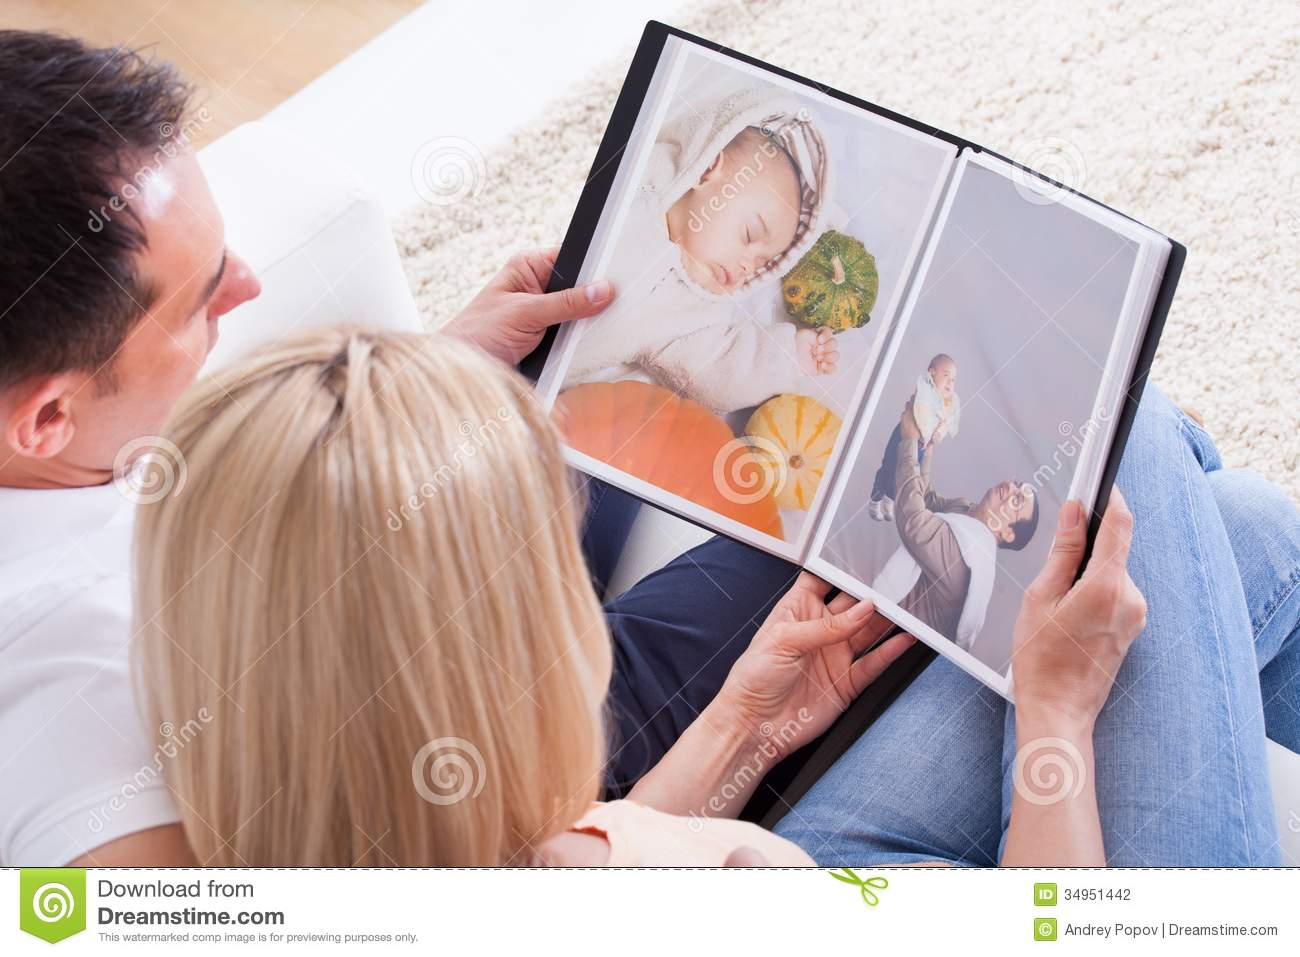 Fabuleux They Look At Family Photo Album Stock Image - Image: 52424477 QK97